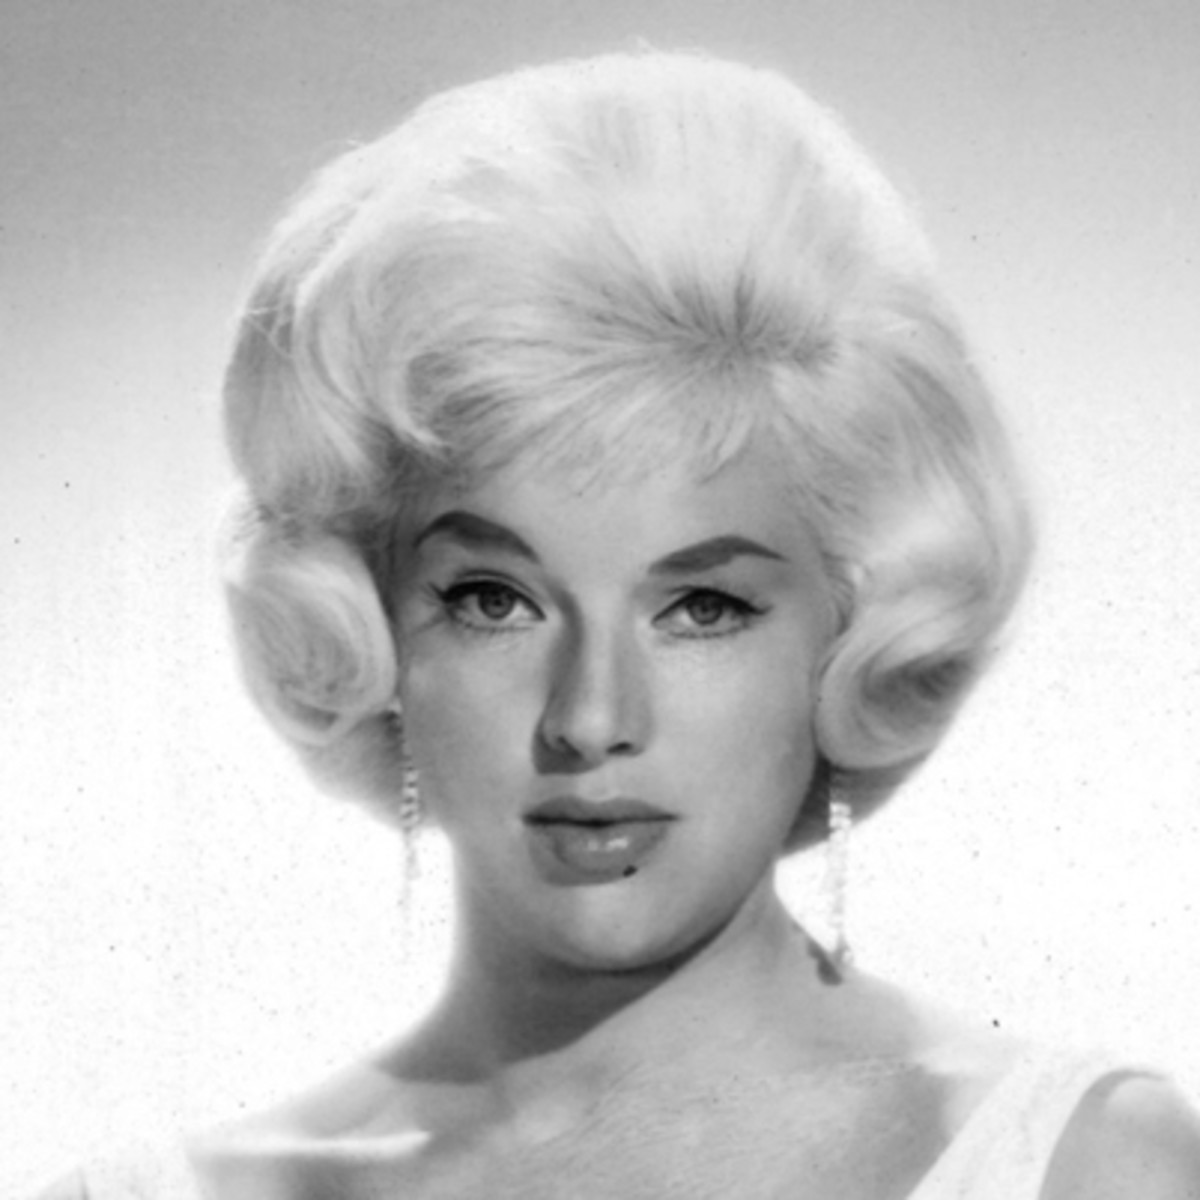 sc 1 st  A\u0026E\u0027s Biography & Diana Dors - Classic Pin-Ups Actress - Biography